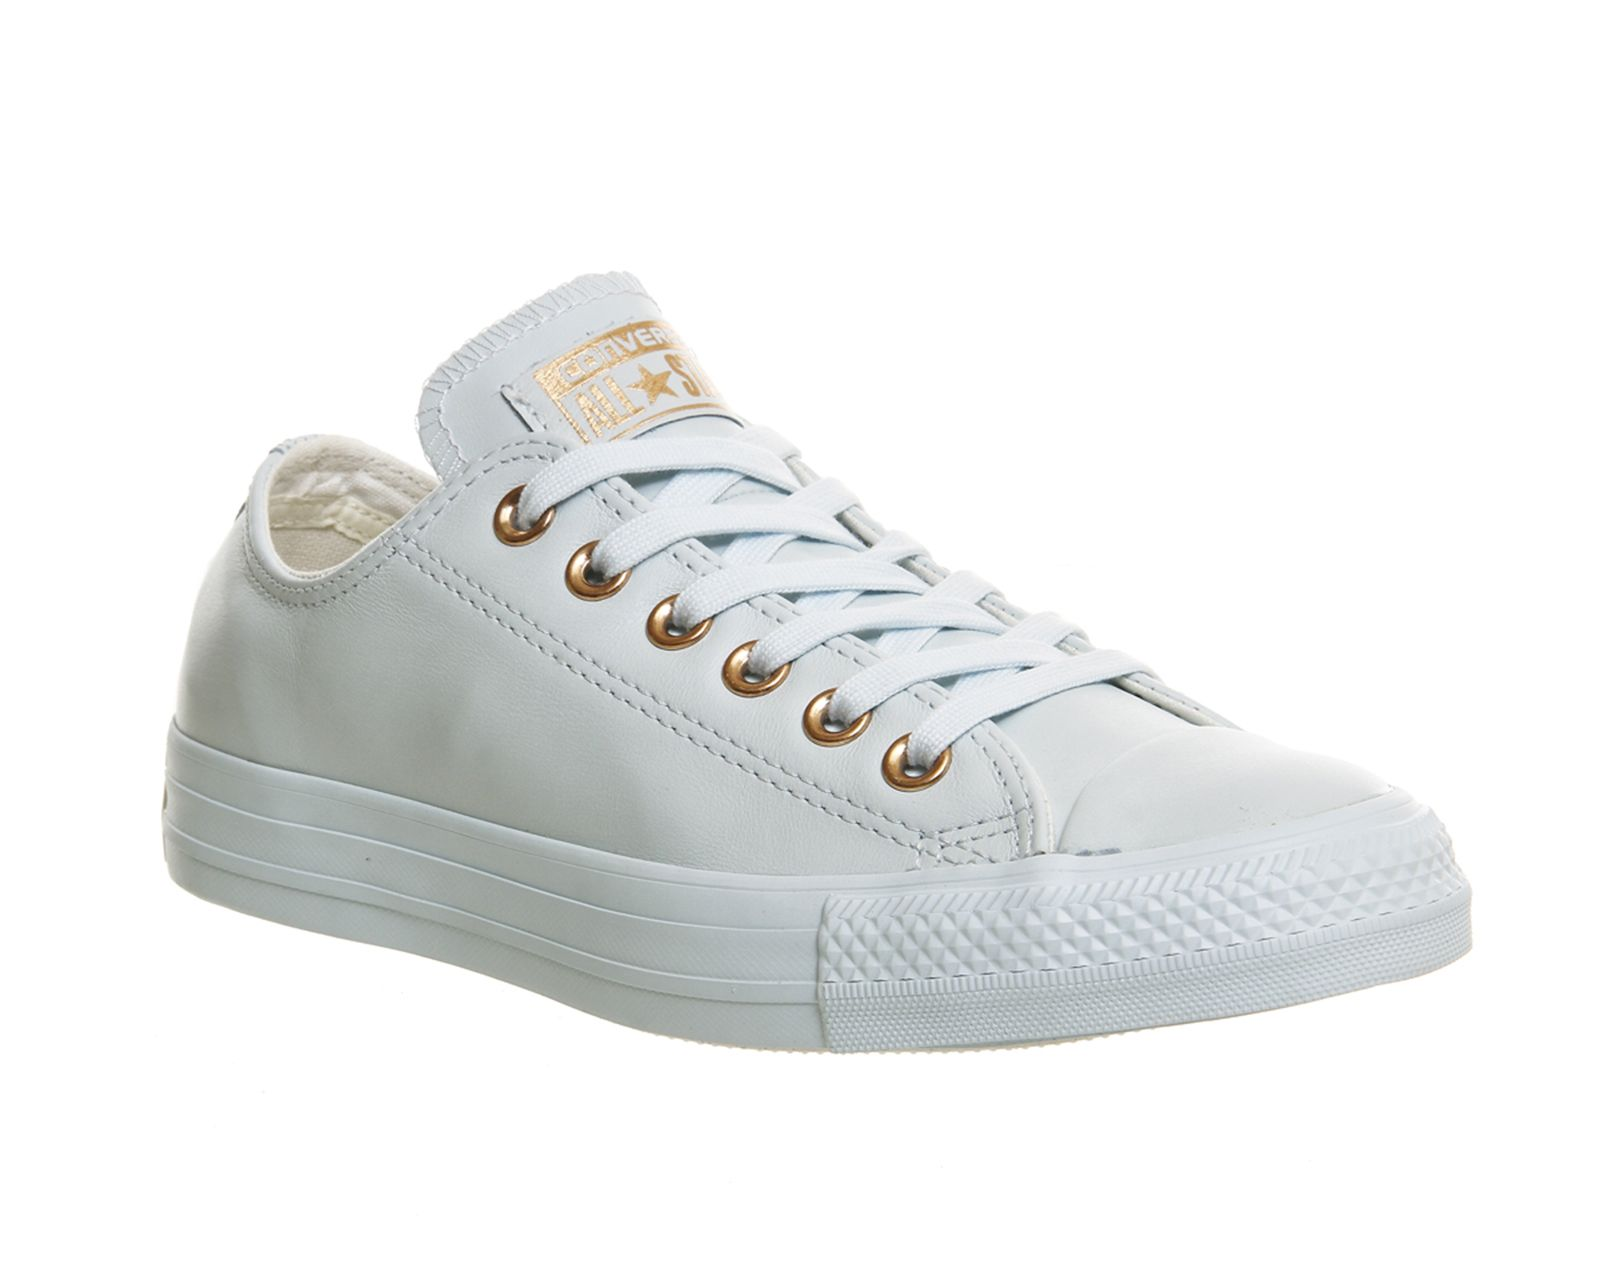 36853961581f91 Buy Powder Blue Rose Gold Exclusive Converse All Star Low Leather from  OFFICE.co.uk.